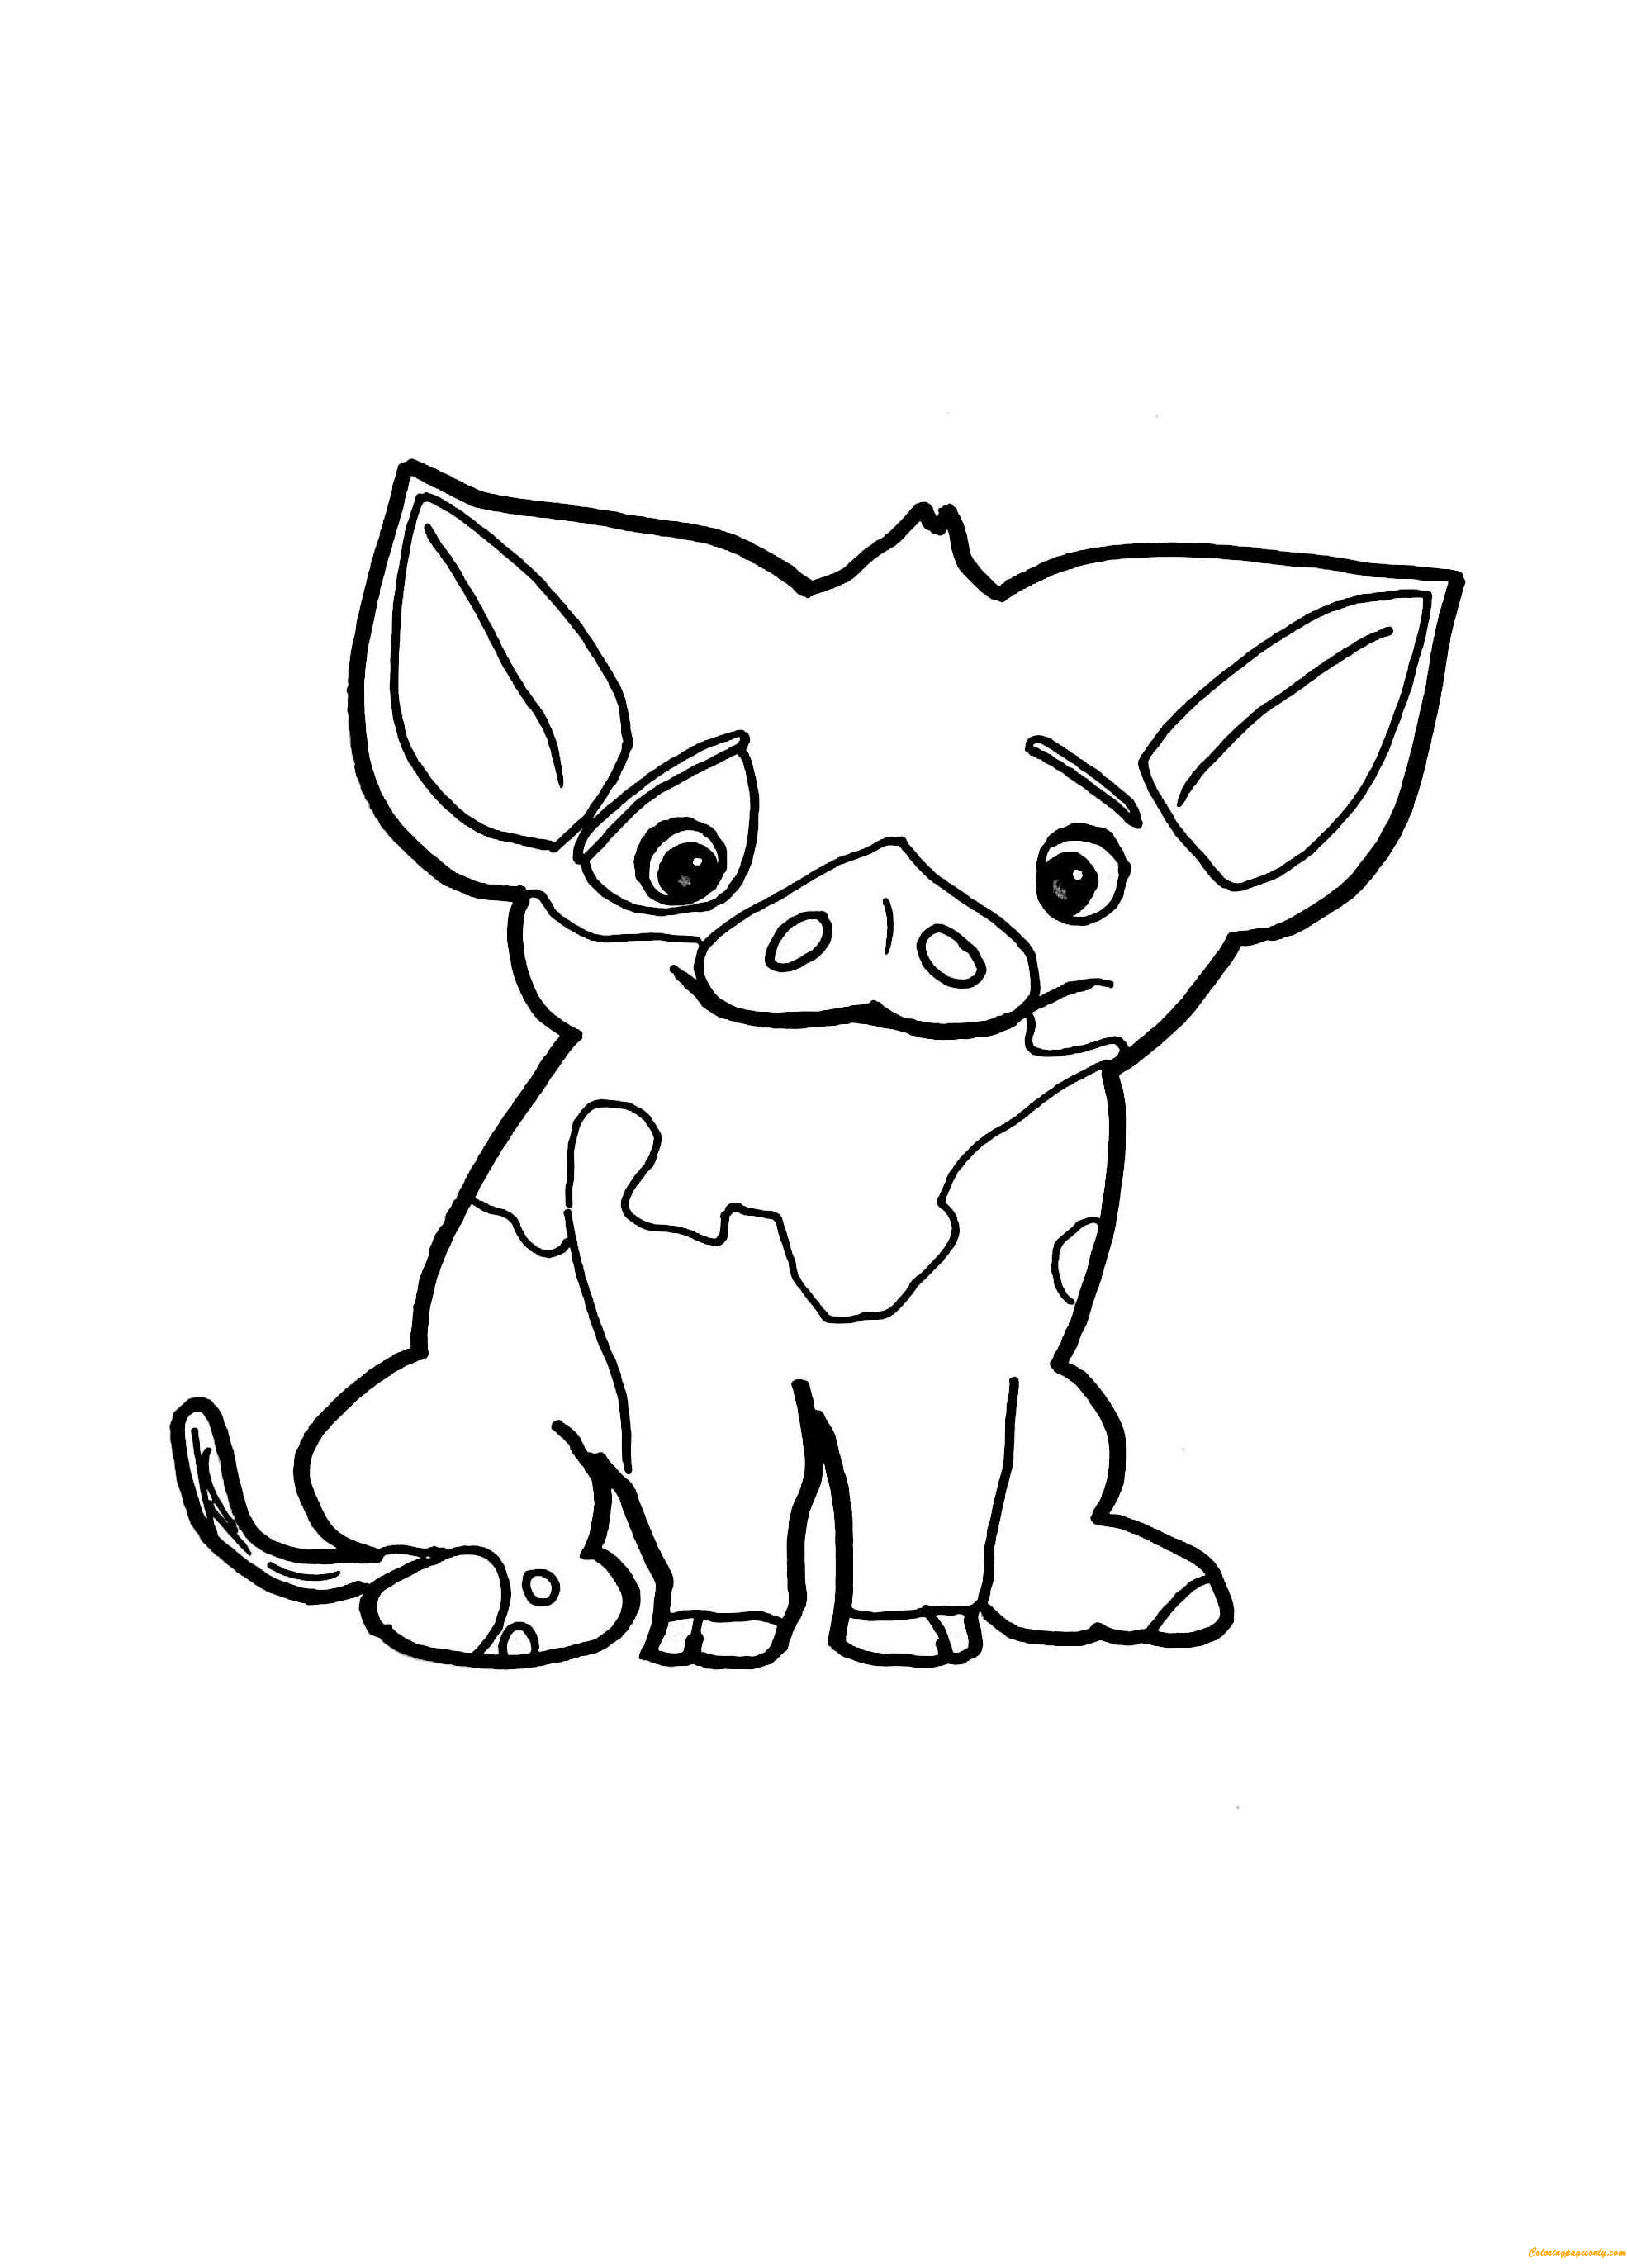 Pua Pig From Moana Coloring Page - Free Coloring Pages Online